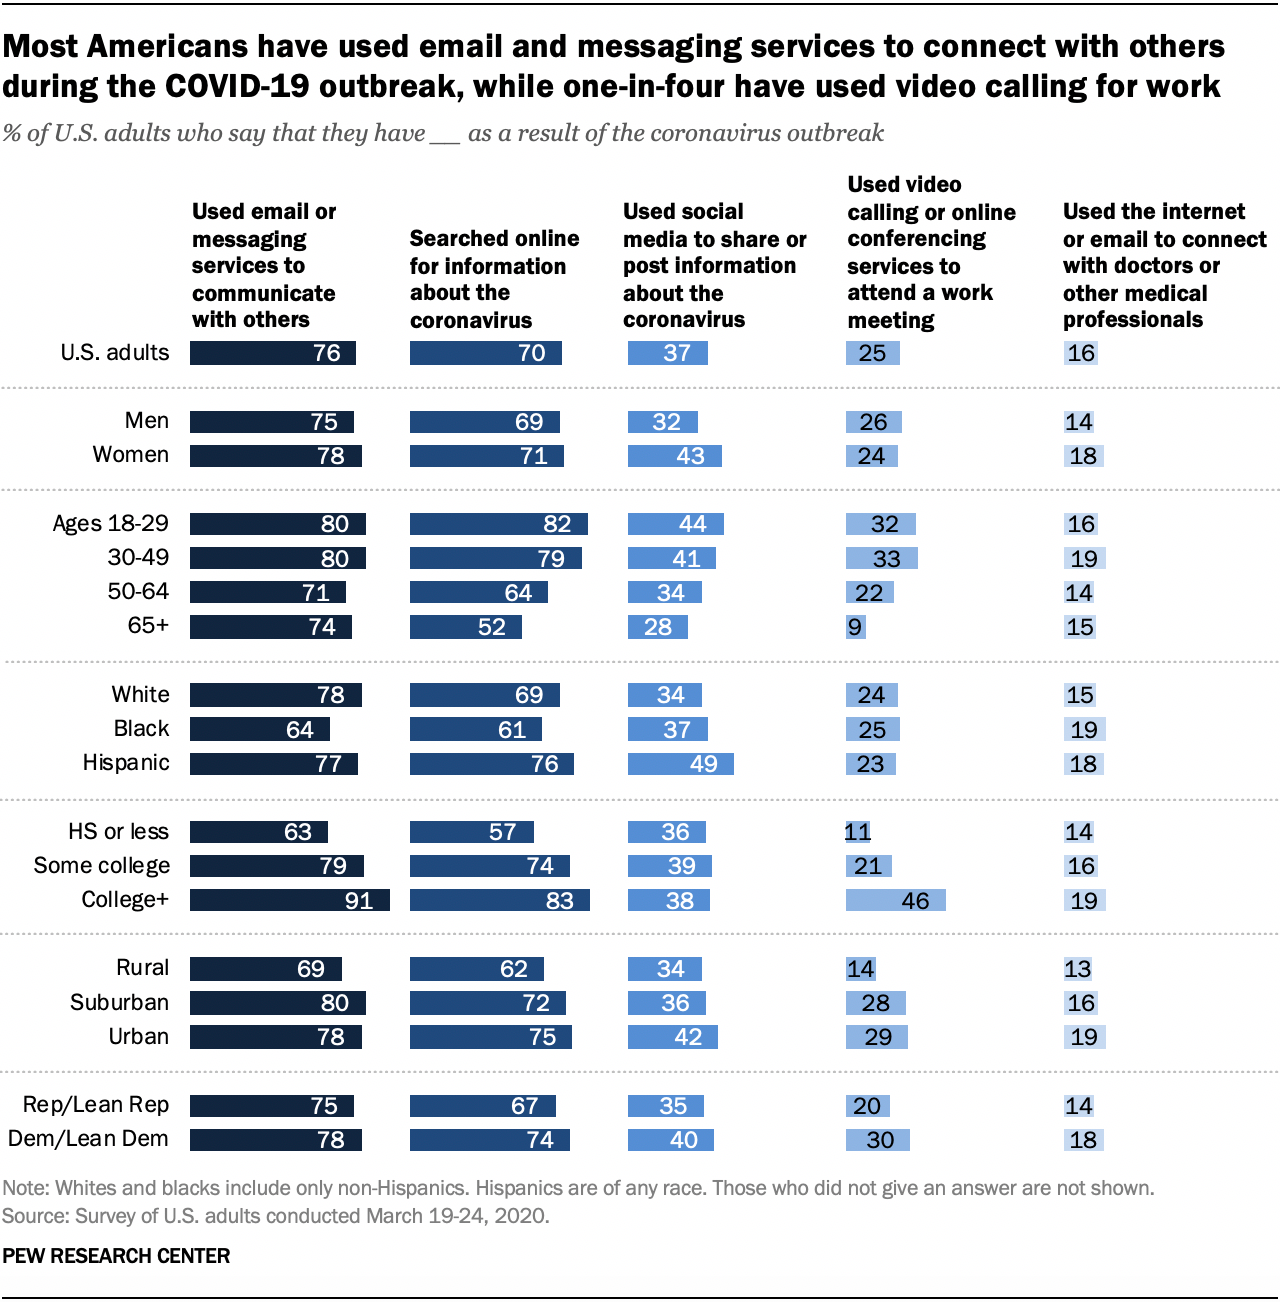 Most Americans have used email and messaging services to connect with others during the COVID-19 outbreak, while one-in-four have used video calling for work